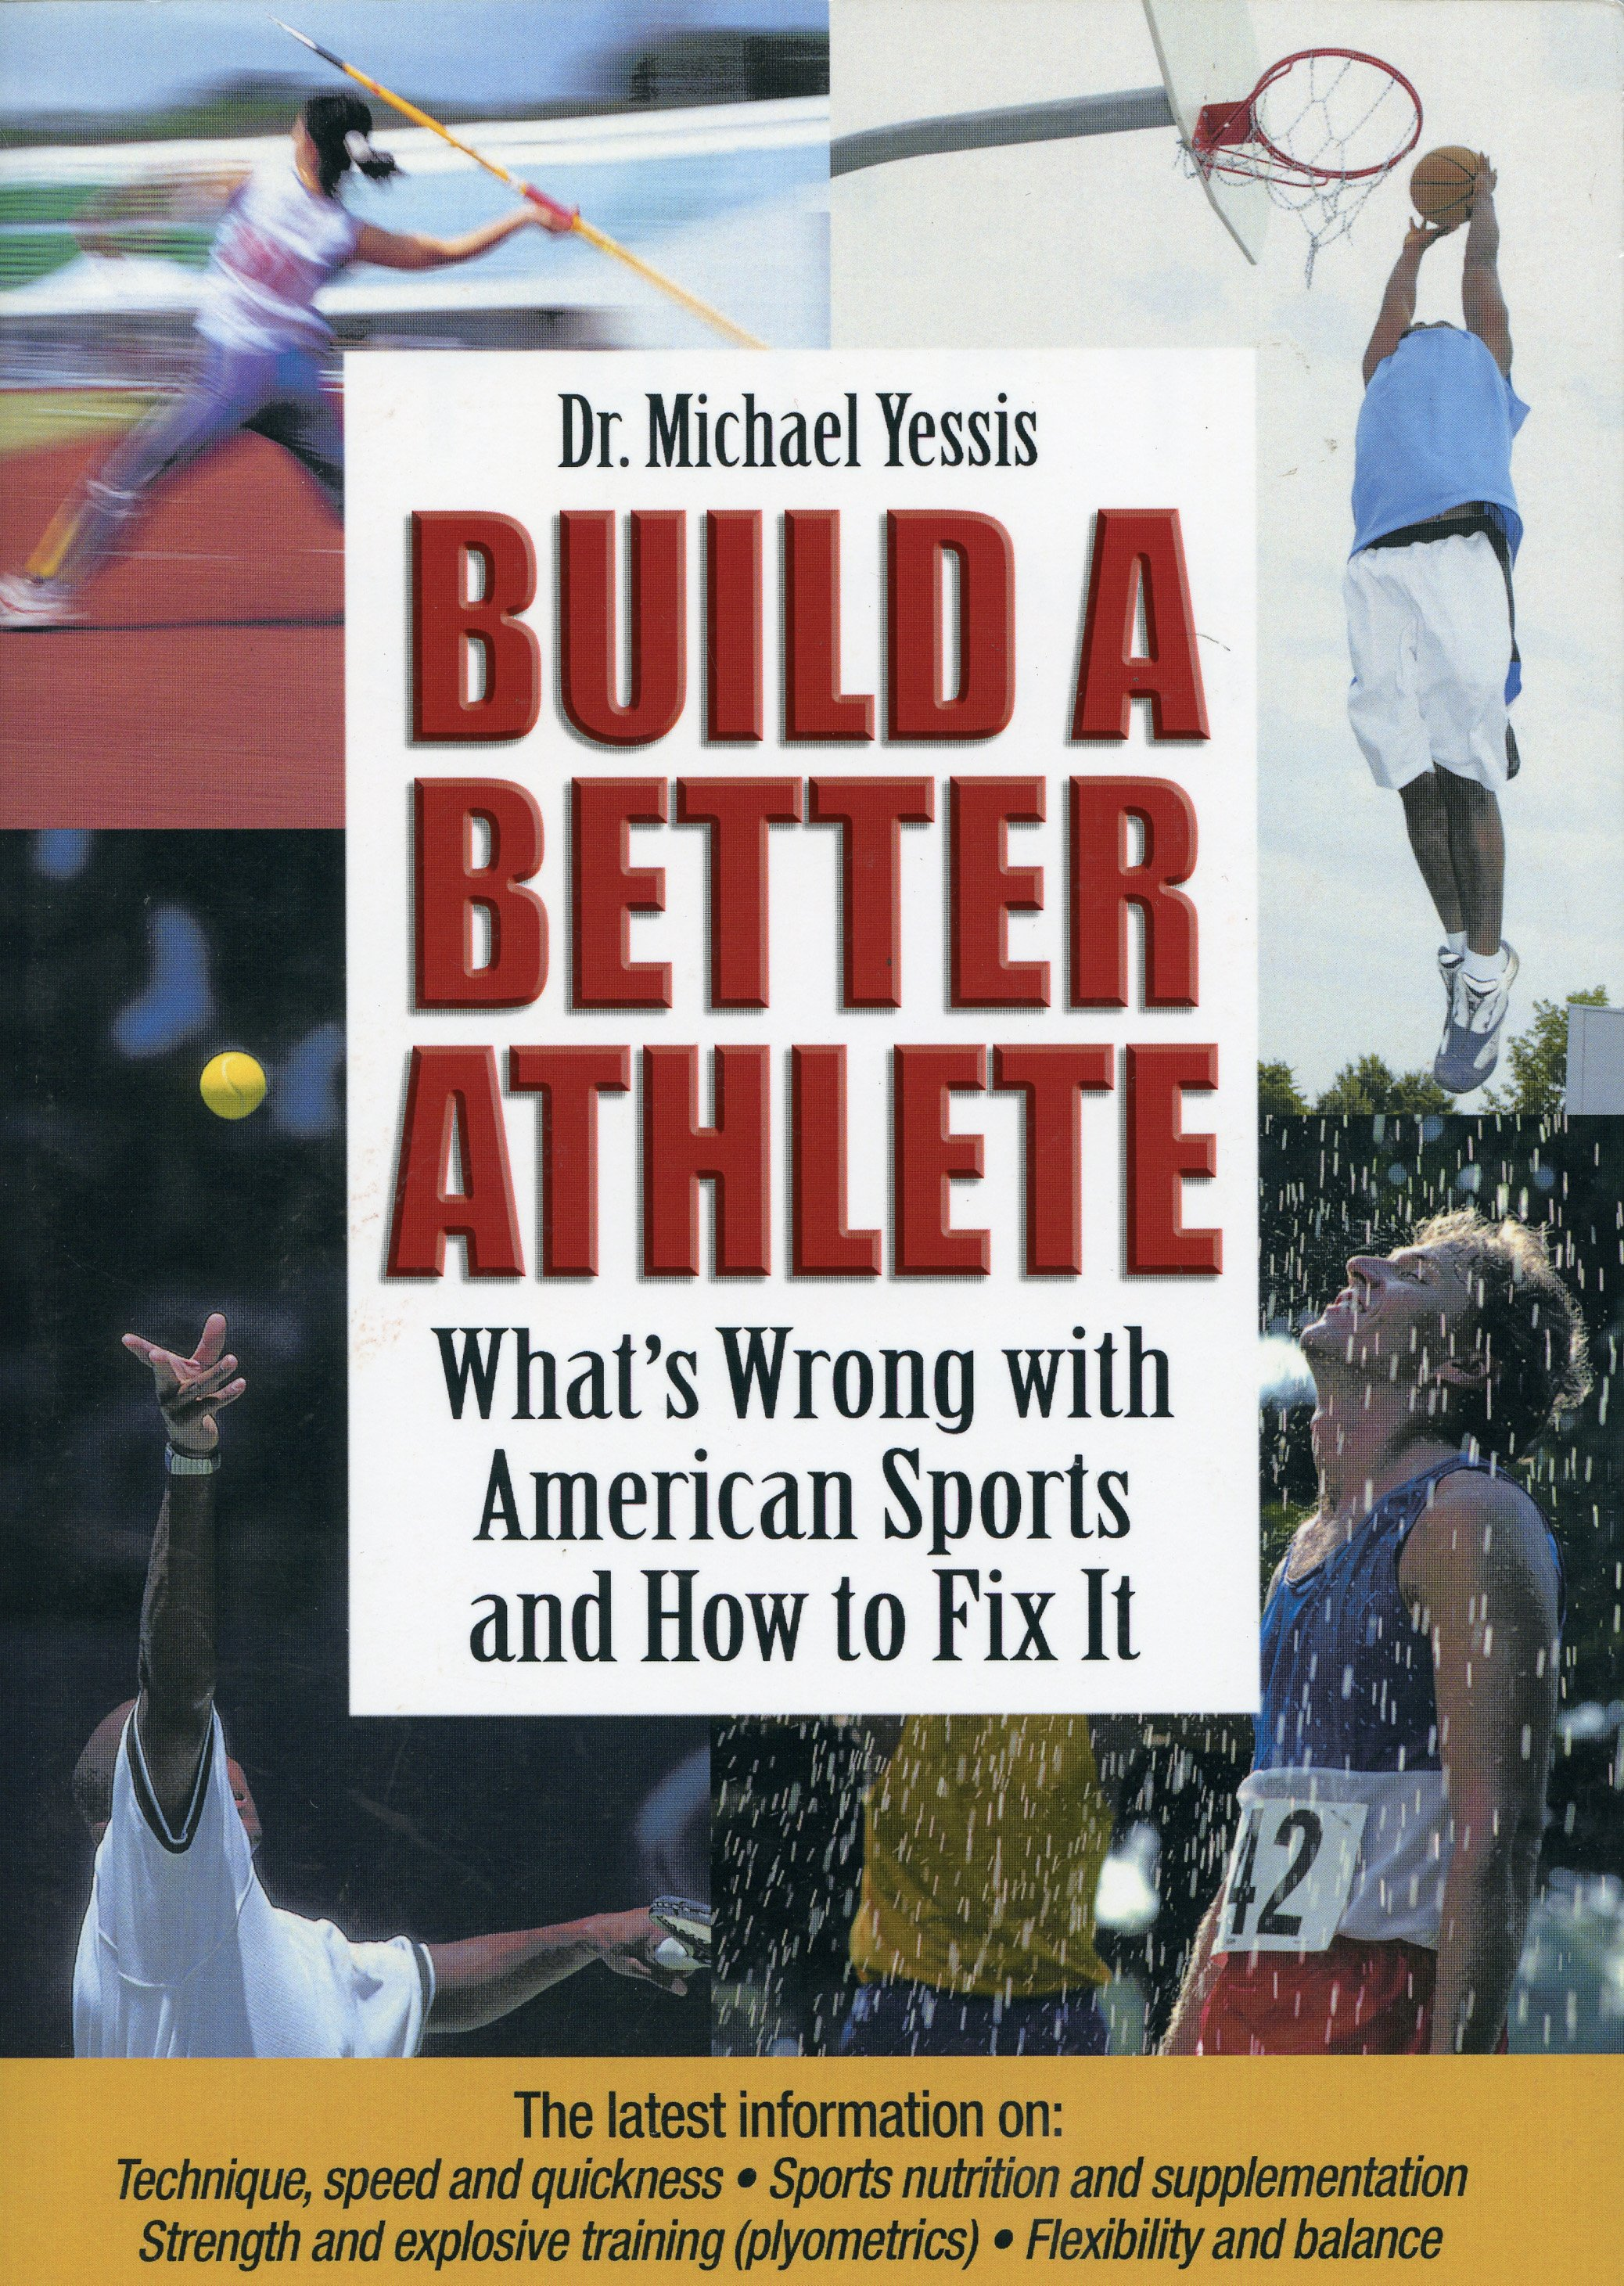 Are great athletes born or does practice make perfect? Are science and technique just as important as athletic ability? The truth is that anyone can improve their athletic performance. This book can show you how. In this simple and easy-to-read book, Dr. Michael Yessis dissects the current standards of physical training and explains how athletes of all levels can apply scientific techniques to develop their physical abilities.  by Dr. Michael Yessis ISBN: 978-1-930546-78-3 $22.00 Published in 2006